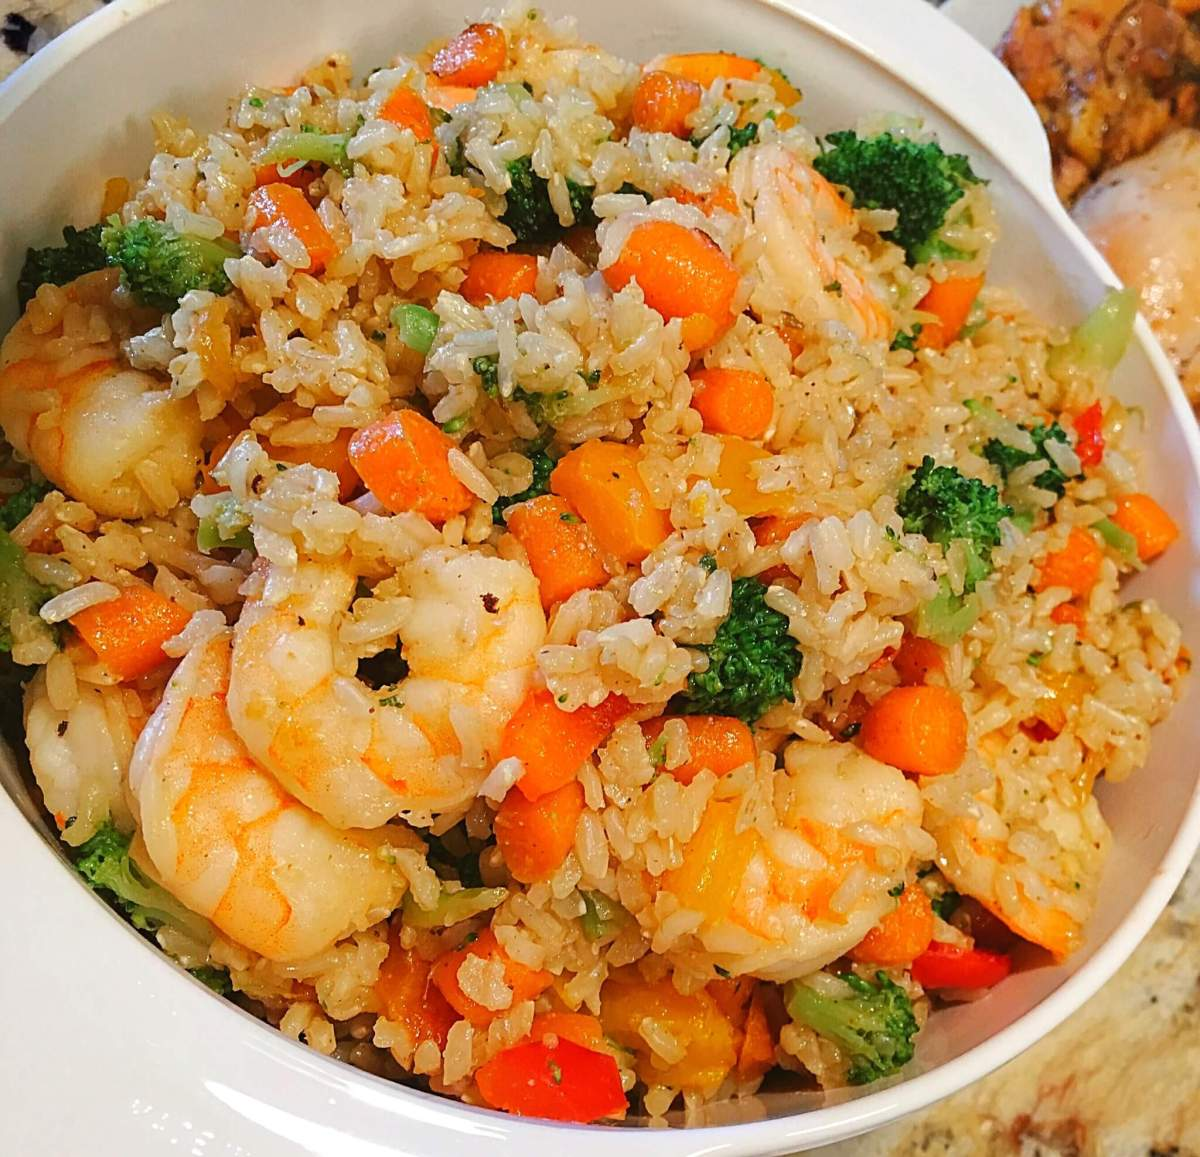 Garlic Shrimp Fried Brown Rice with Vegetables